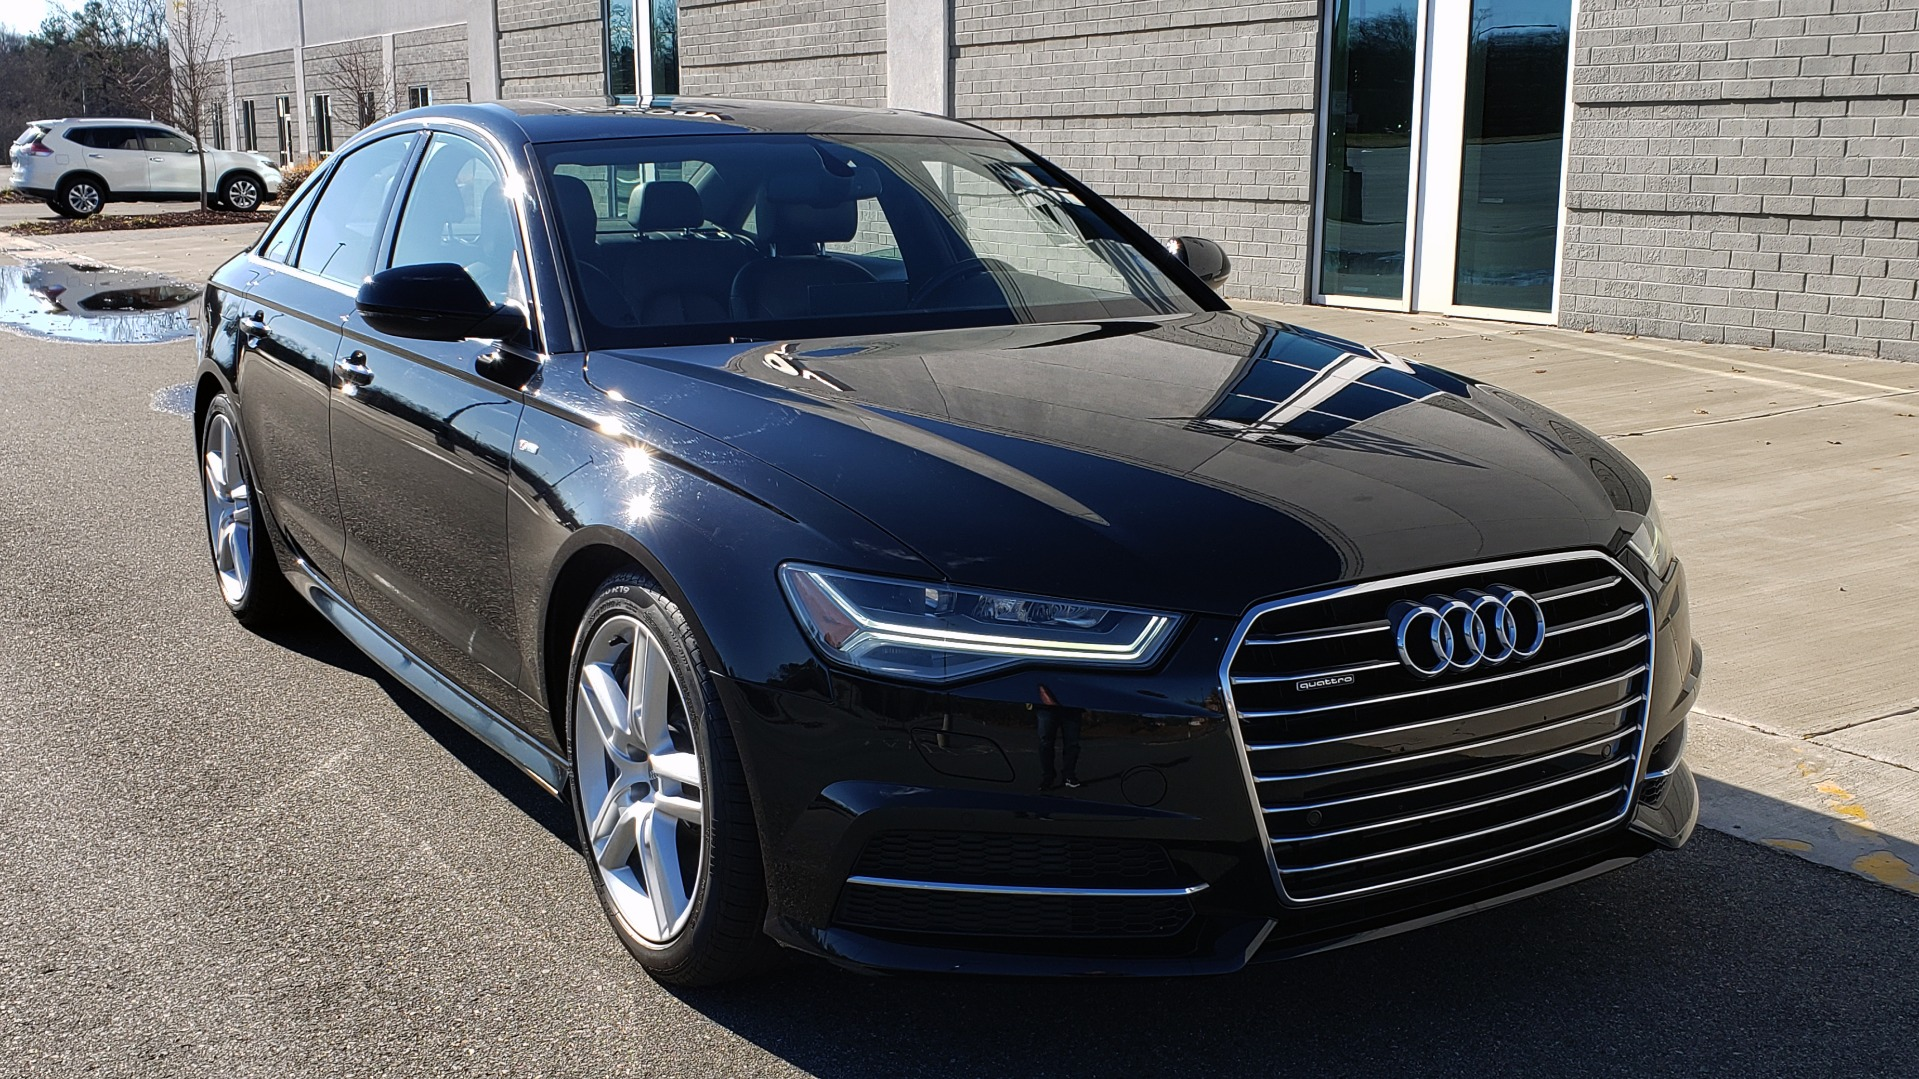 Used 2016 Audi A6 2.0T PREMIUM PLUS / NAV / S-LINE / CLD WTHR / SUNROOF for sale Sold at Formula Imports in Charlotte NC 28227 4